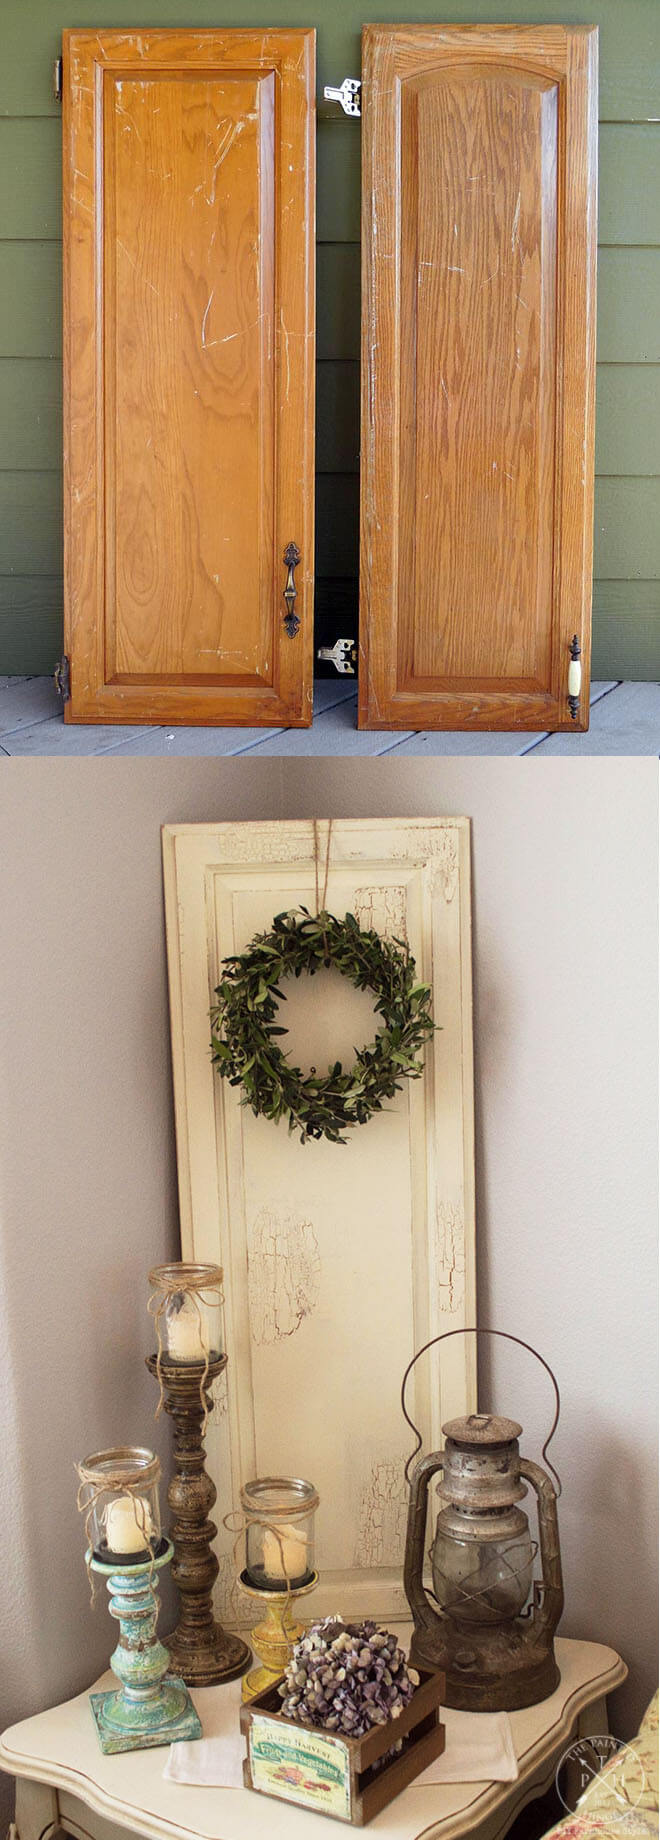 16. Simple Painted Plank Wreath Decor